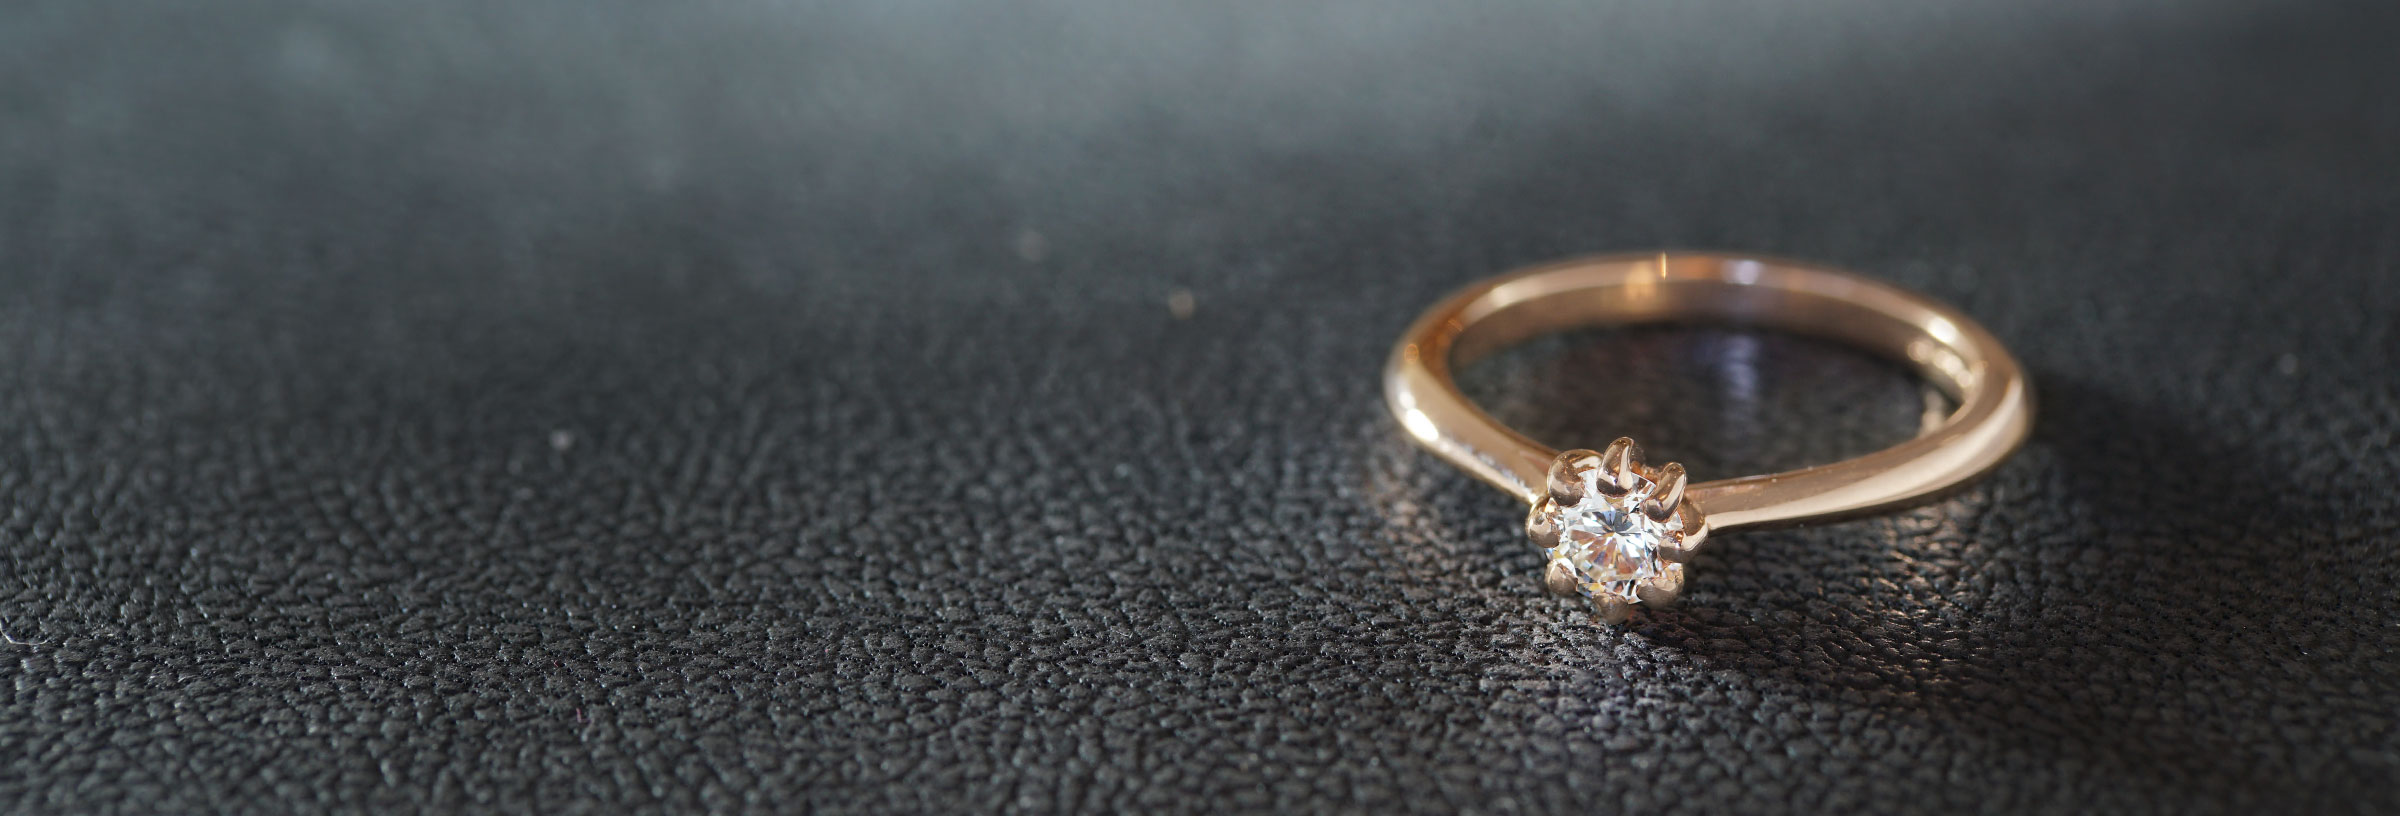 Fairtrade-9-carat-rose-gold-eight-claw-set-diamond-ring